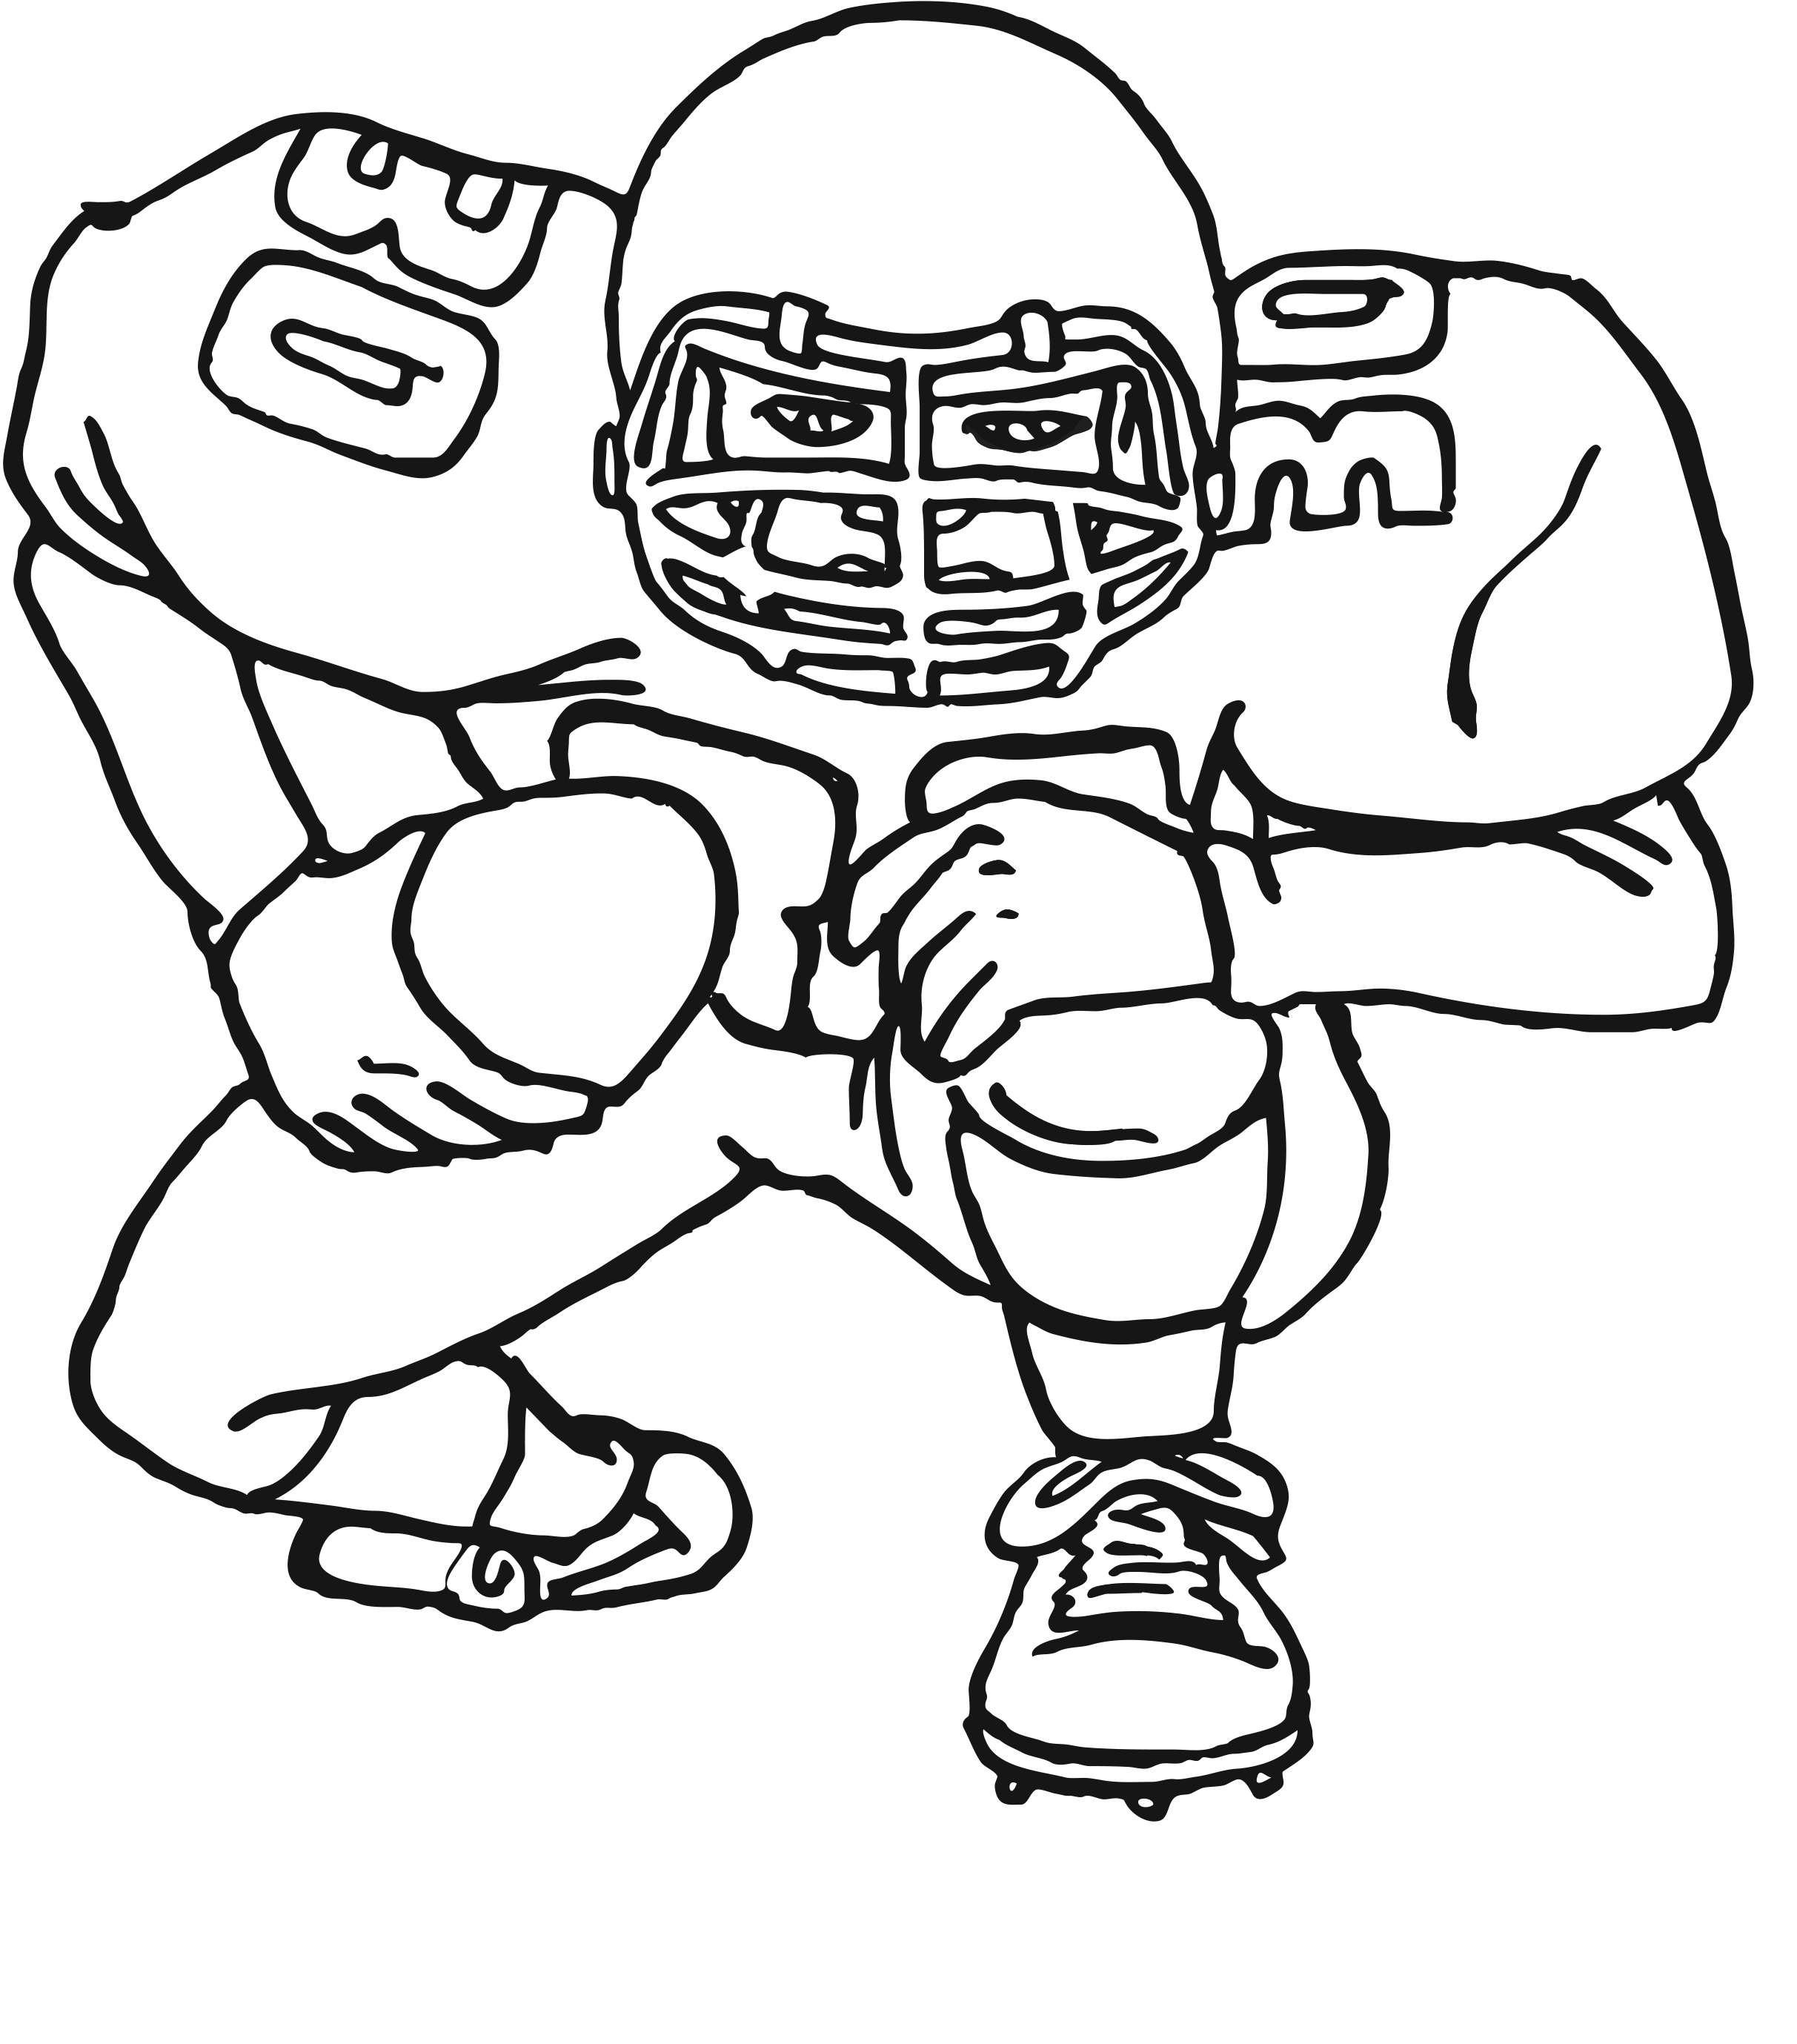 2425x2758 Coloring Pages Football